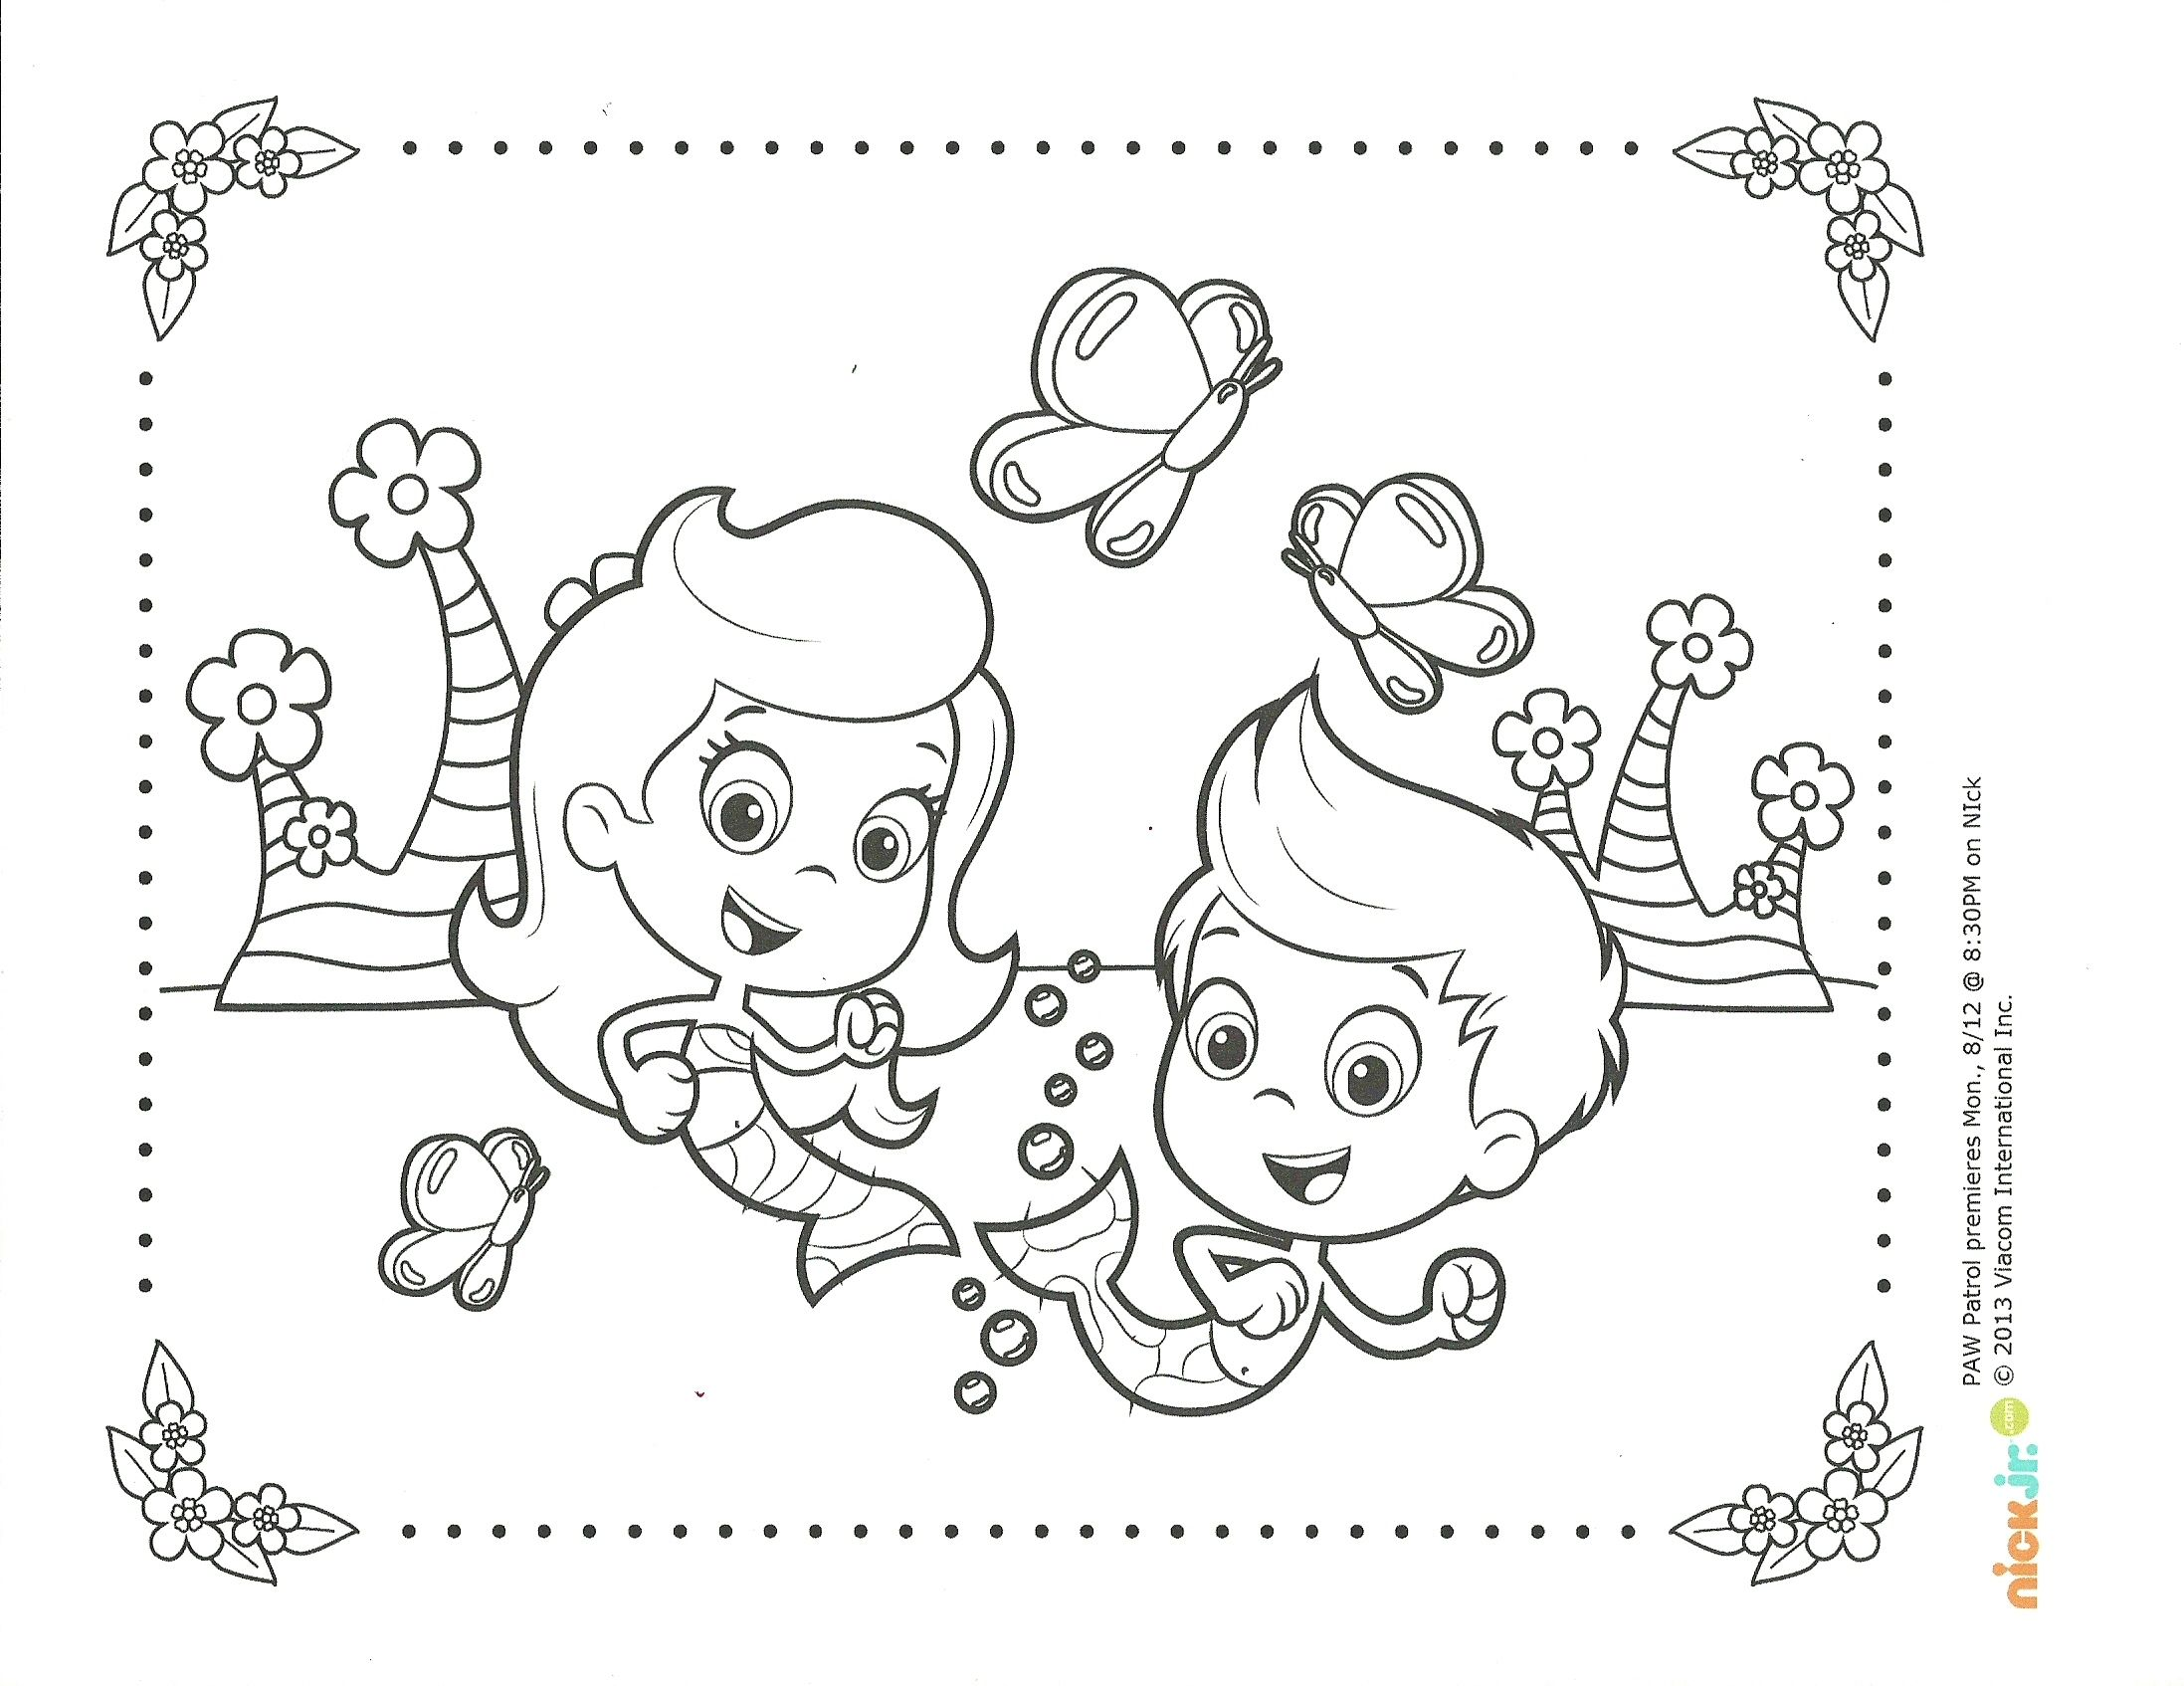 Bubble Guppies Springtime Coloring Page | Teaching Taylor | Pinterest